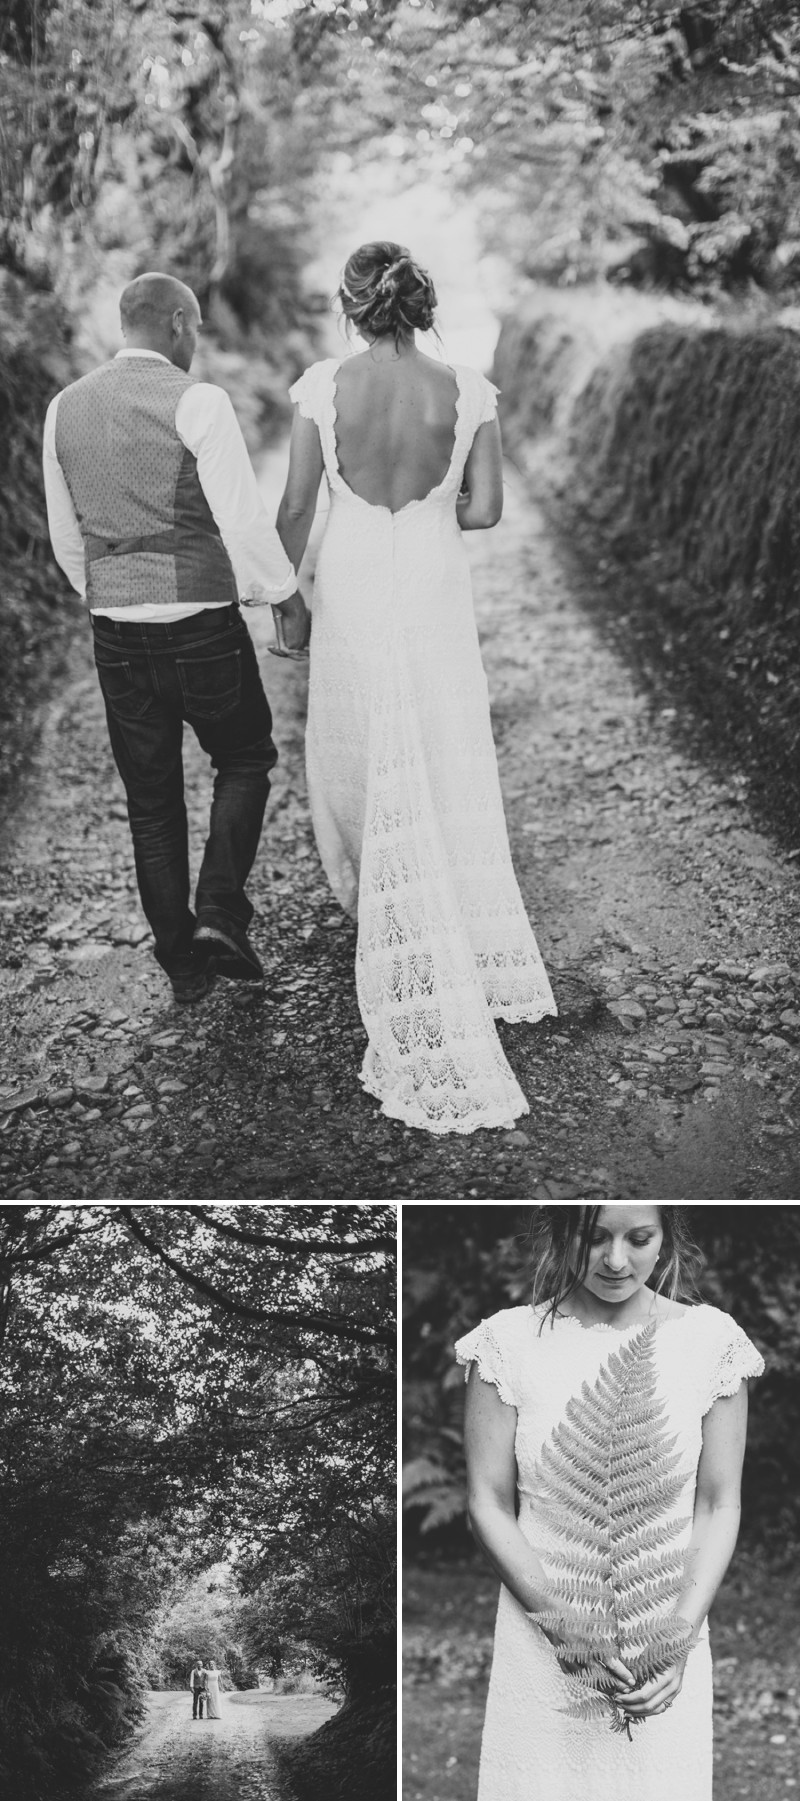 A Beautiful Rustic Peter Pan Themed Wedding With A Daughters Of Simone Wedding Dress At Trevenna Barns in Cornwall With Photography By Hayley Savage._0007